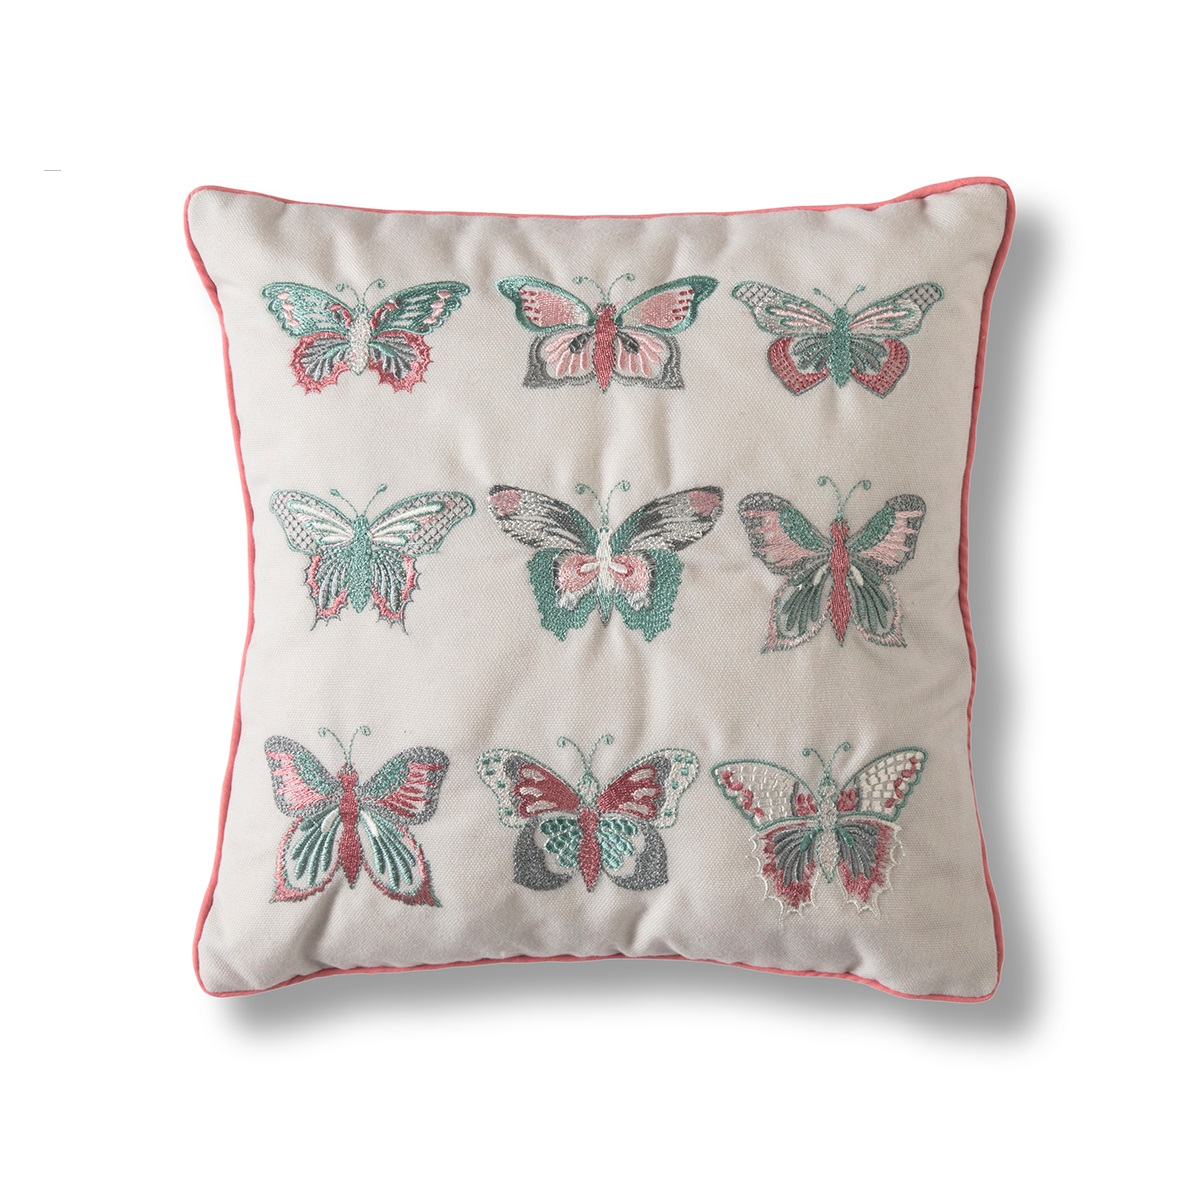 Image of Embroidered Butterflies Cushion - Natural